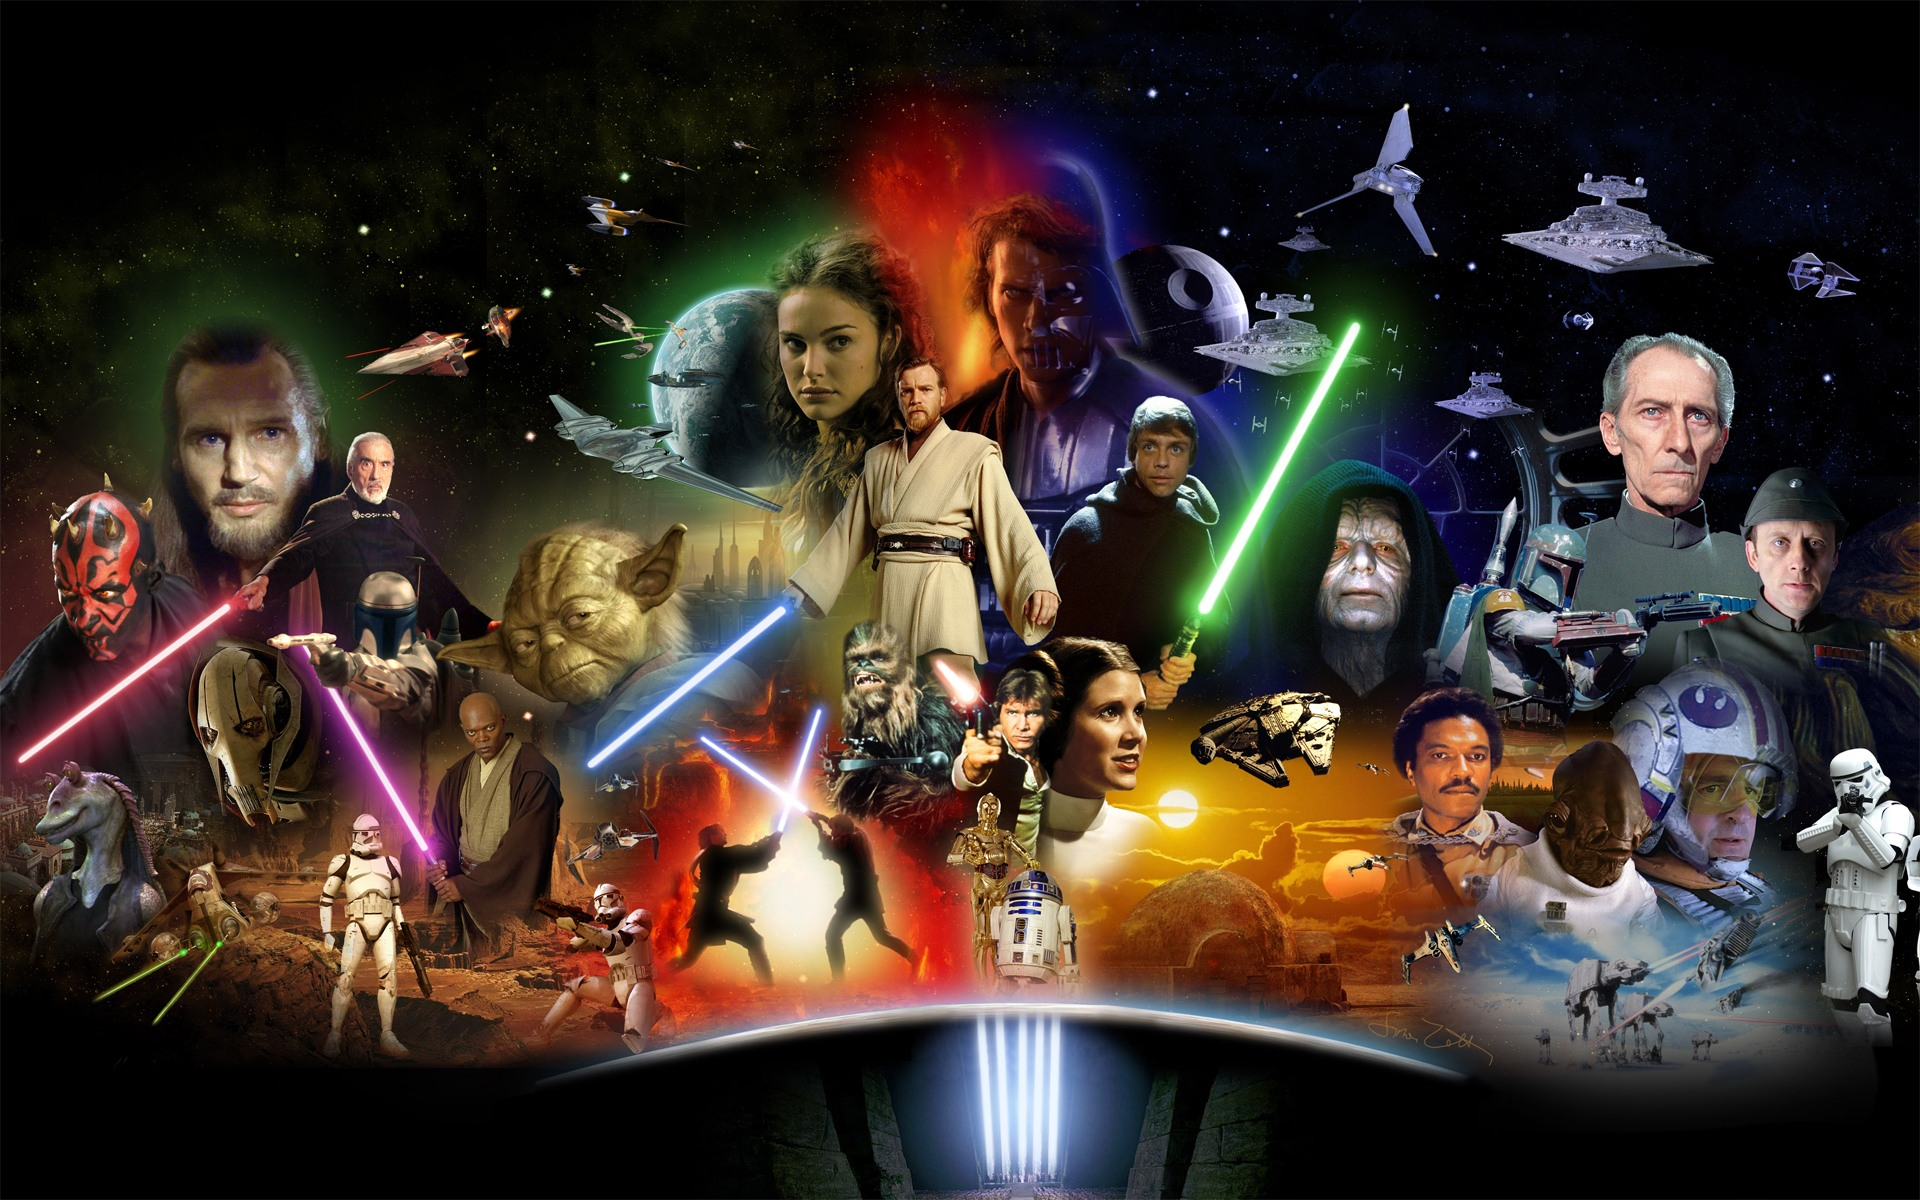 Star Wars desktop wallpaper 1920x1200